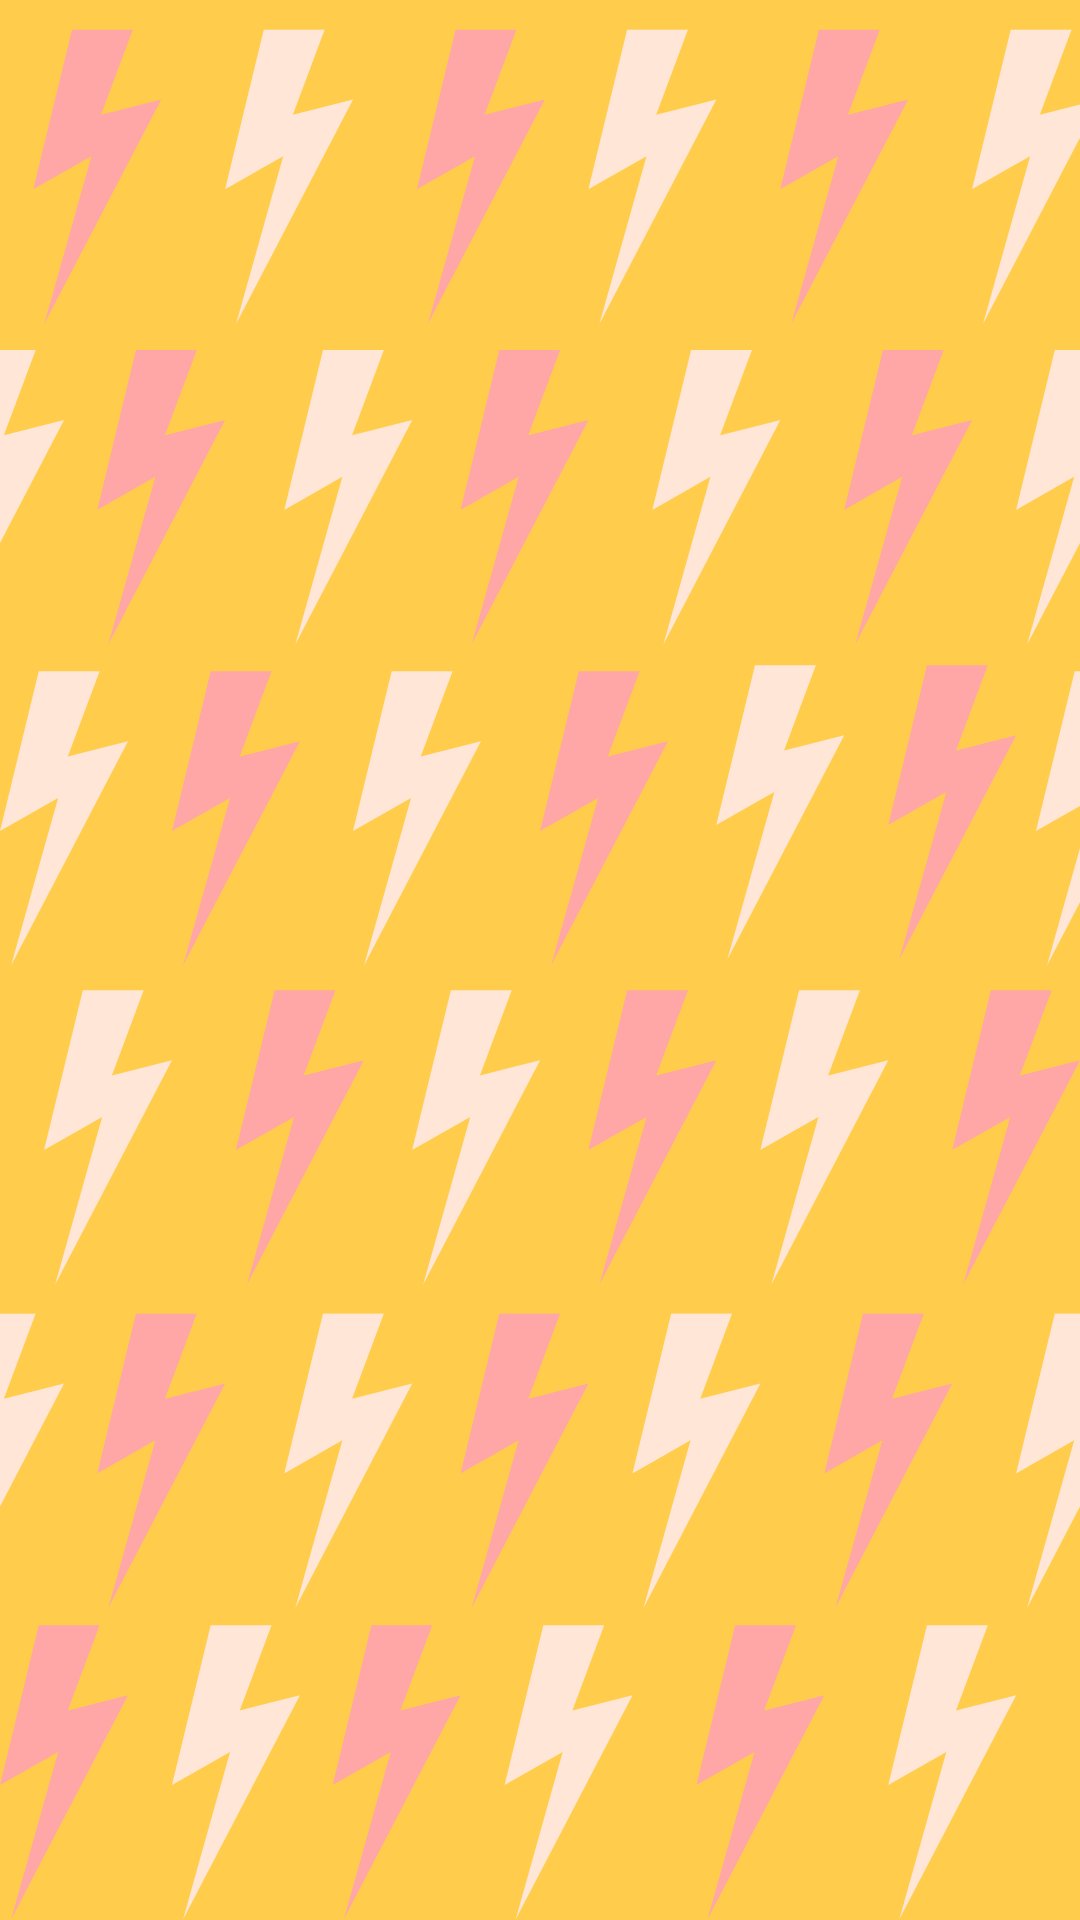 Lightning bolt, IPhone background Iphone background